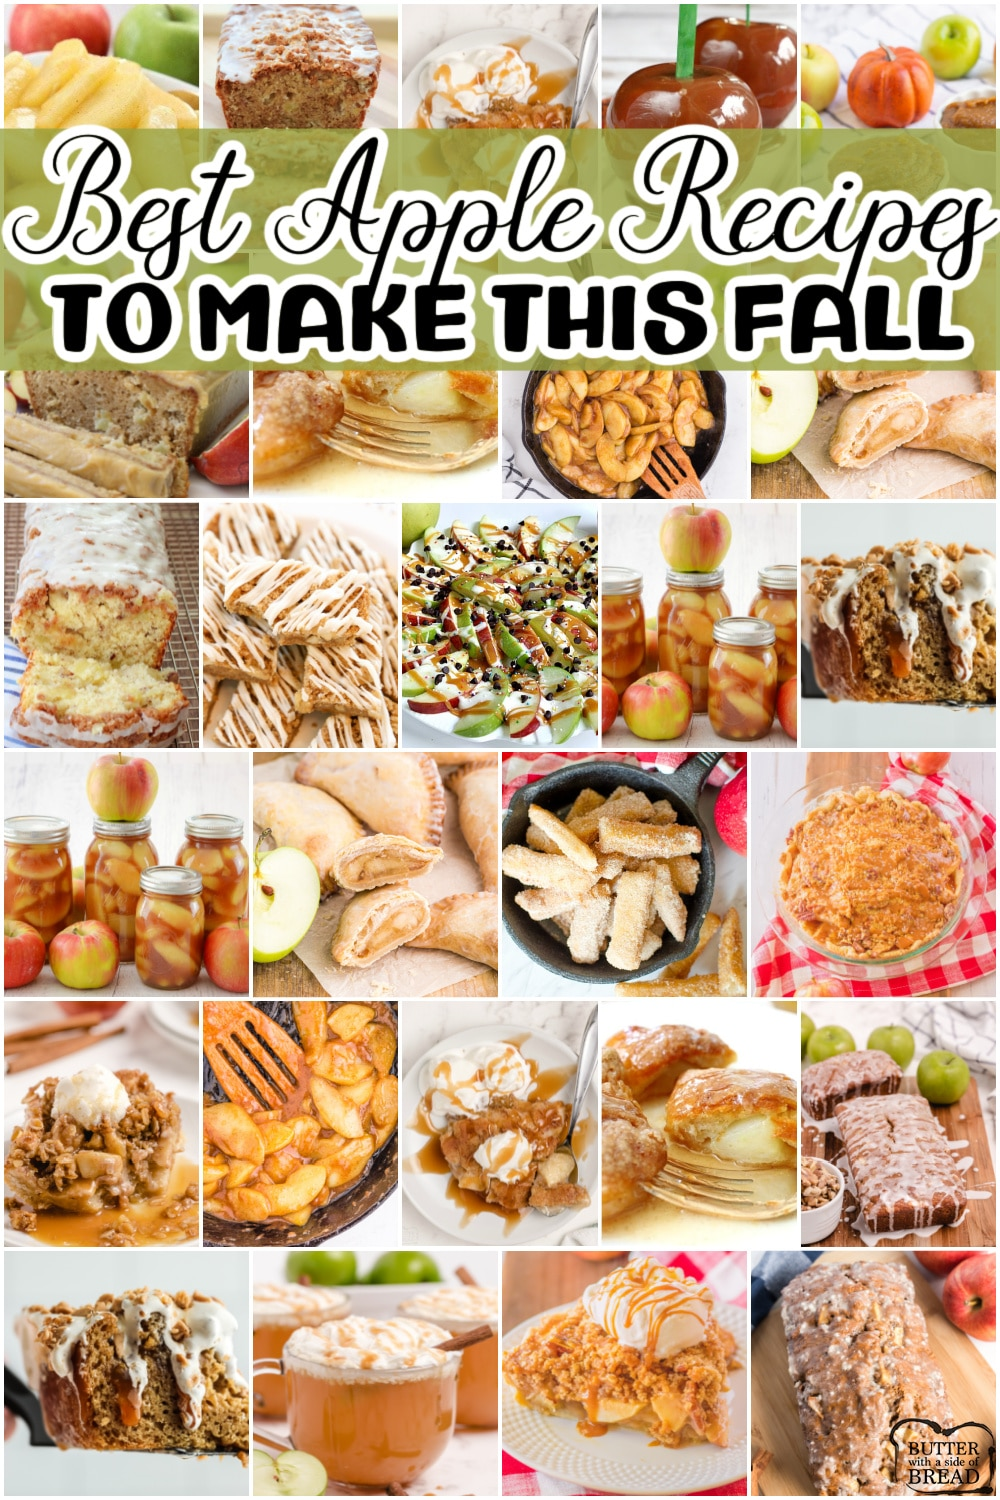 Best collection of incredible apple recipes ever! See our pick of most popular apple pies, apple crisps, how to freeze apples, dry apples, and everything in between!